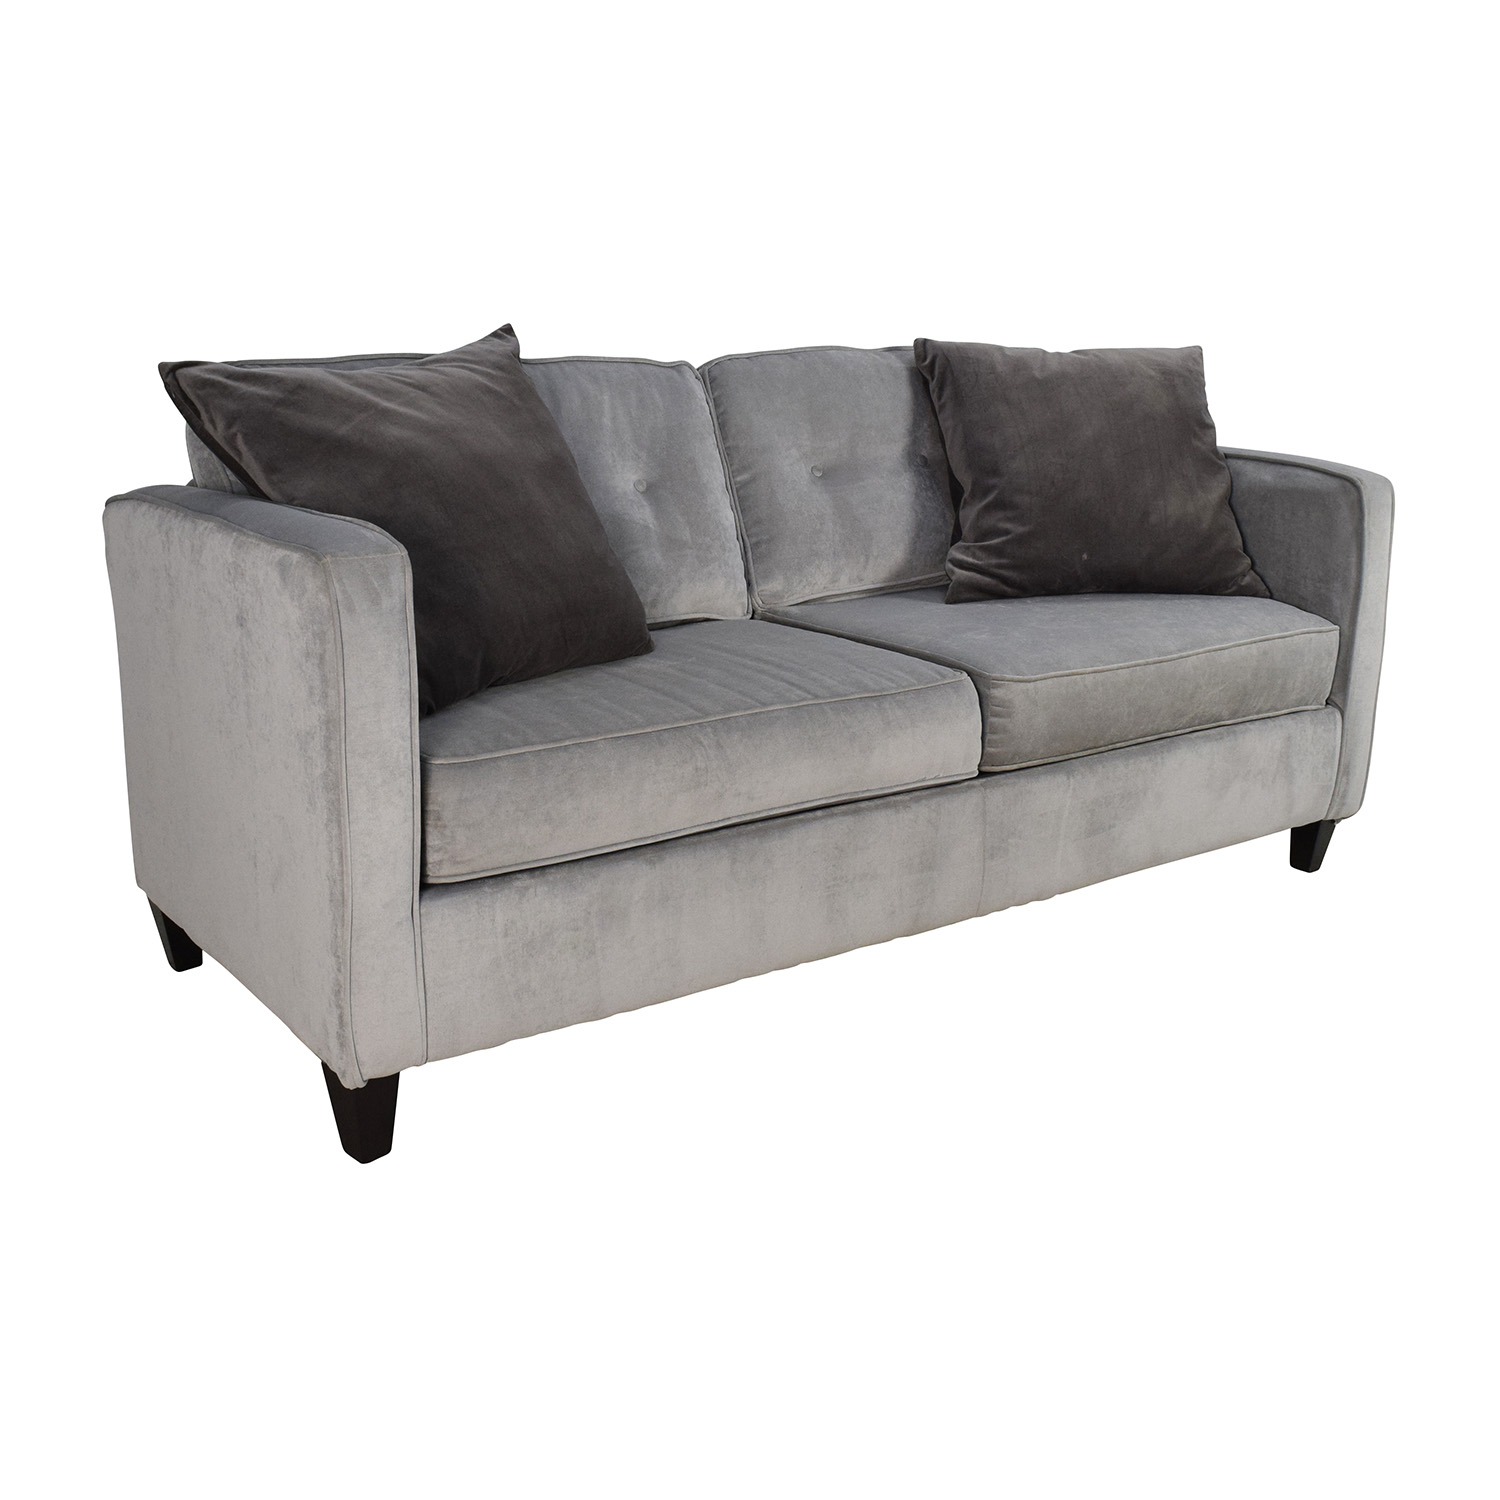 40% OFF - Raymour and Flanigan Raymour & Flanigan Kierland Couch ...